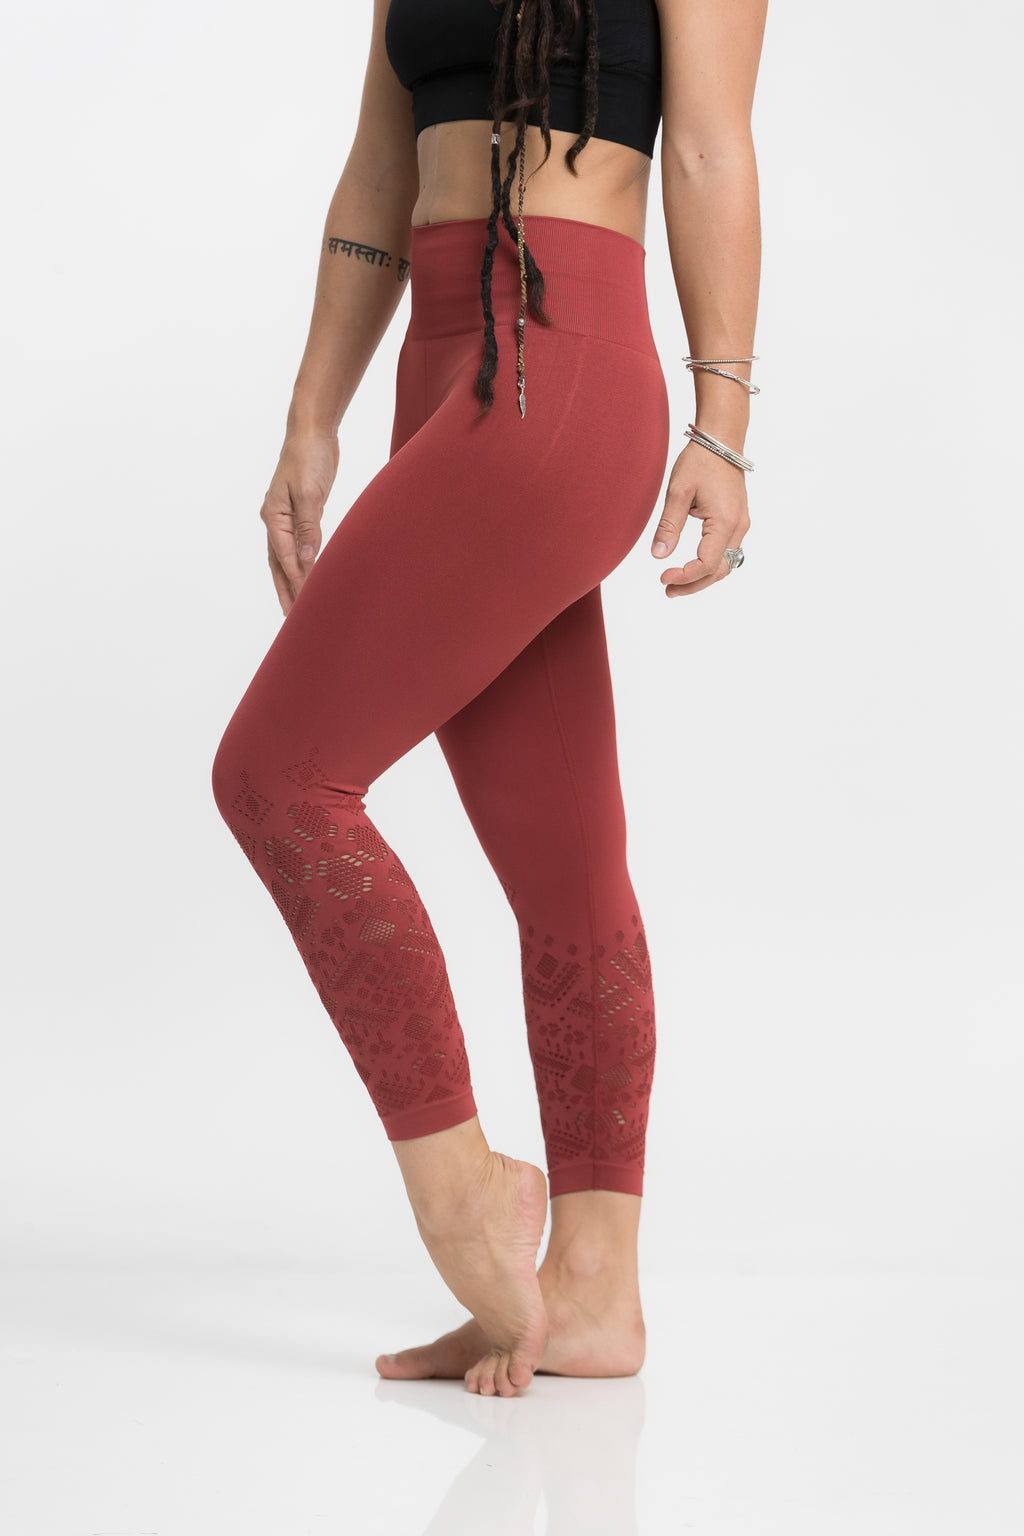 Inca leggings